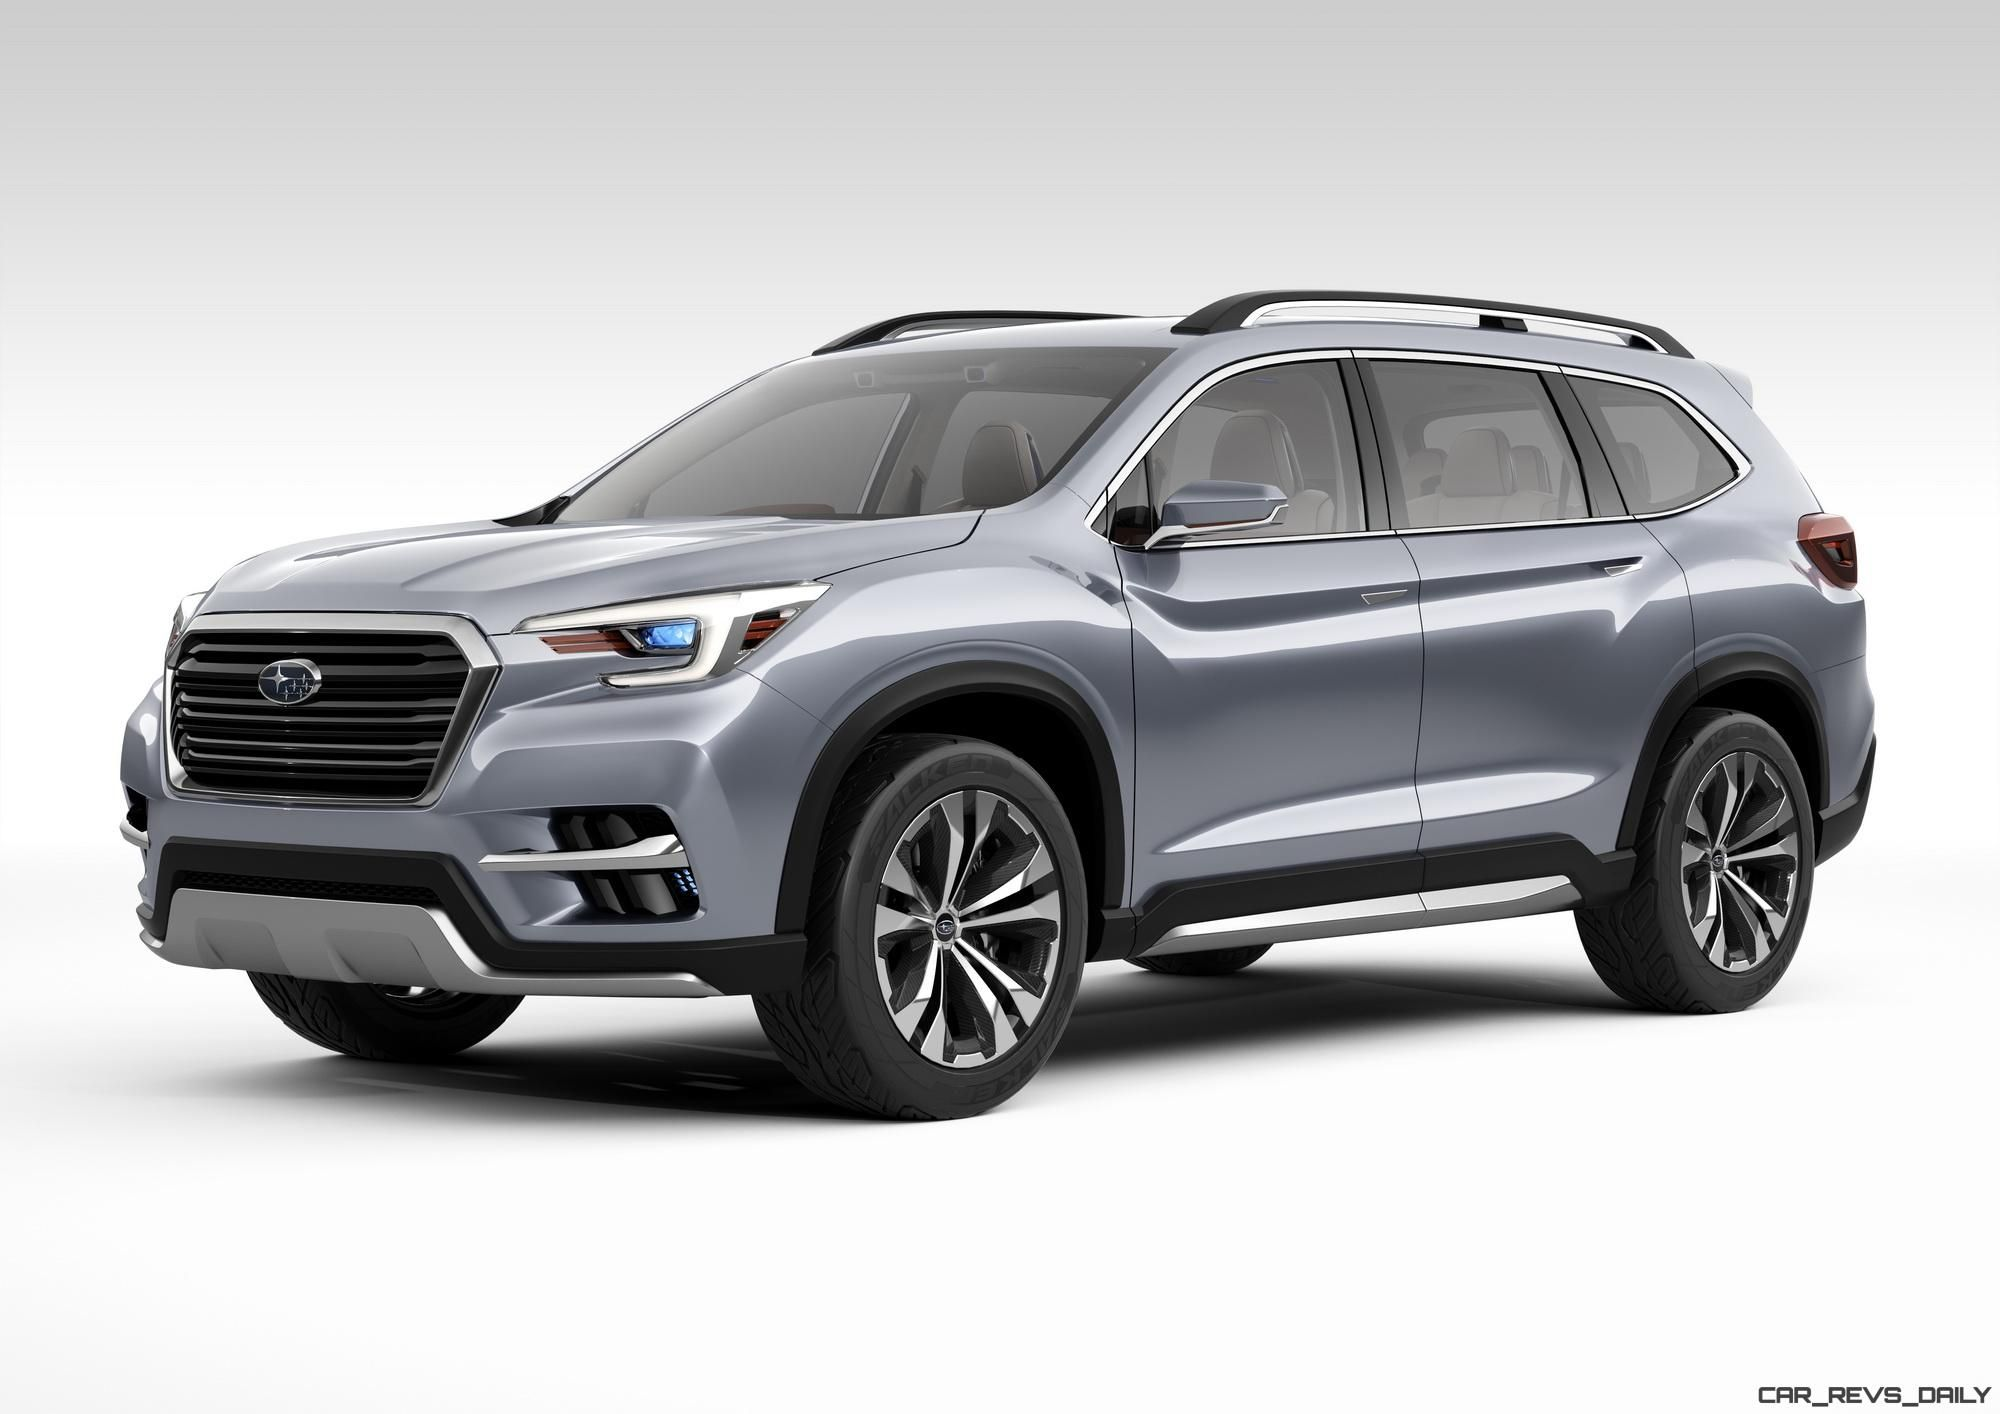 2017 Subaru Ascent Concept Is Jumbo 7 Seater Outback Headed To Showrooms Next Year Car Shopping Car Revs Daily Com Subaru Suv 3rd Row Suv Suv